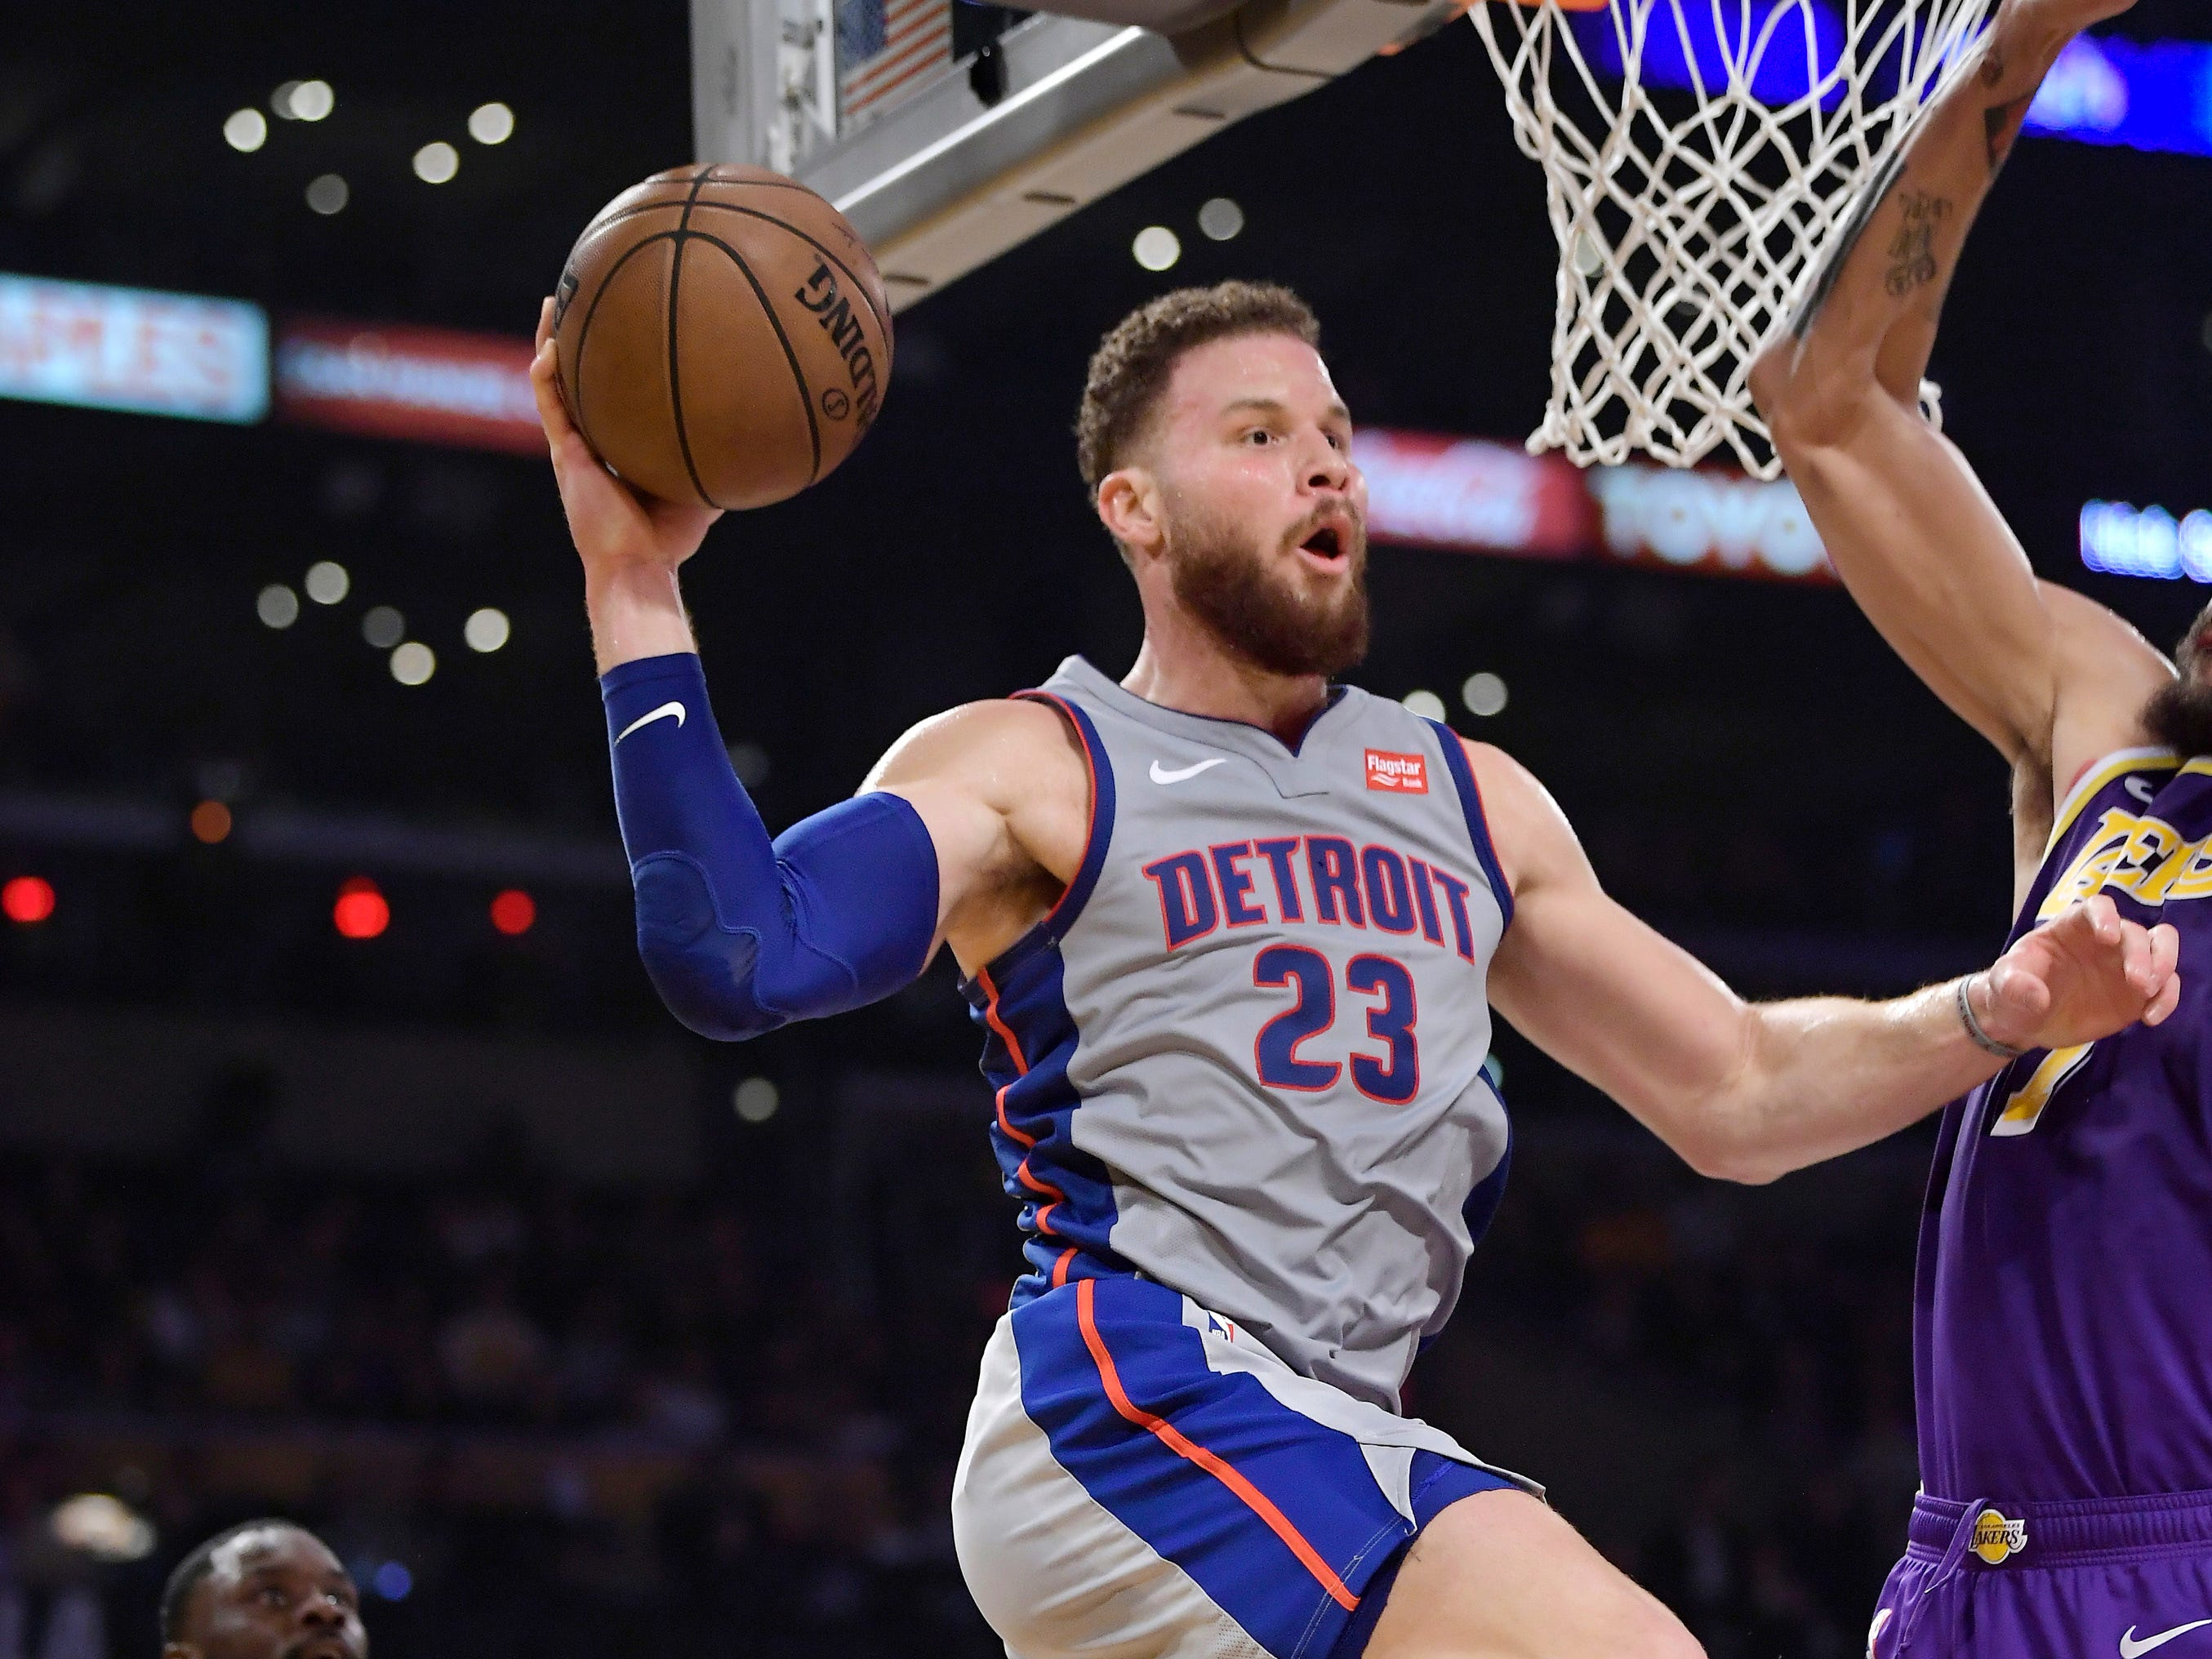 Detroit Pistons forward Blake Griffin looks to pass the ball as Los Angeles Lakers guard Lance Stephenson, left, defends during the first half of an NBA basketball game Wednesday, Jan. 9, 2019, in Los Angeles.